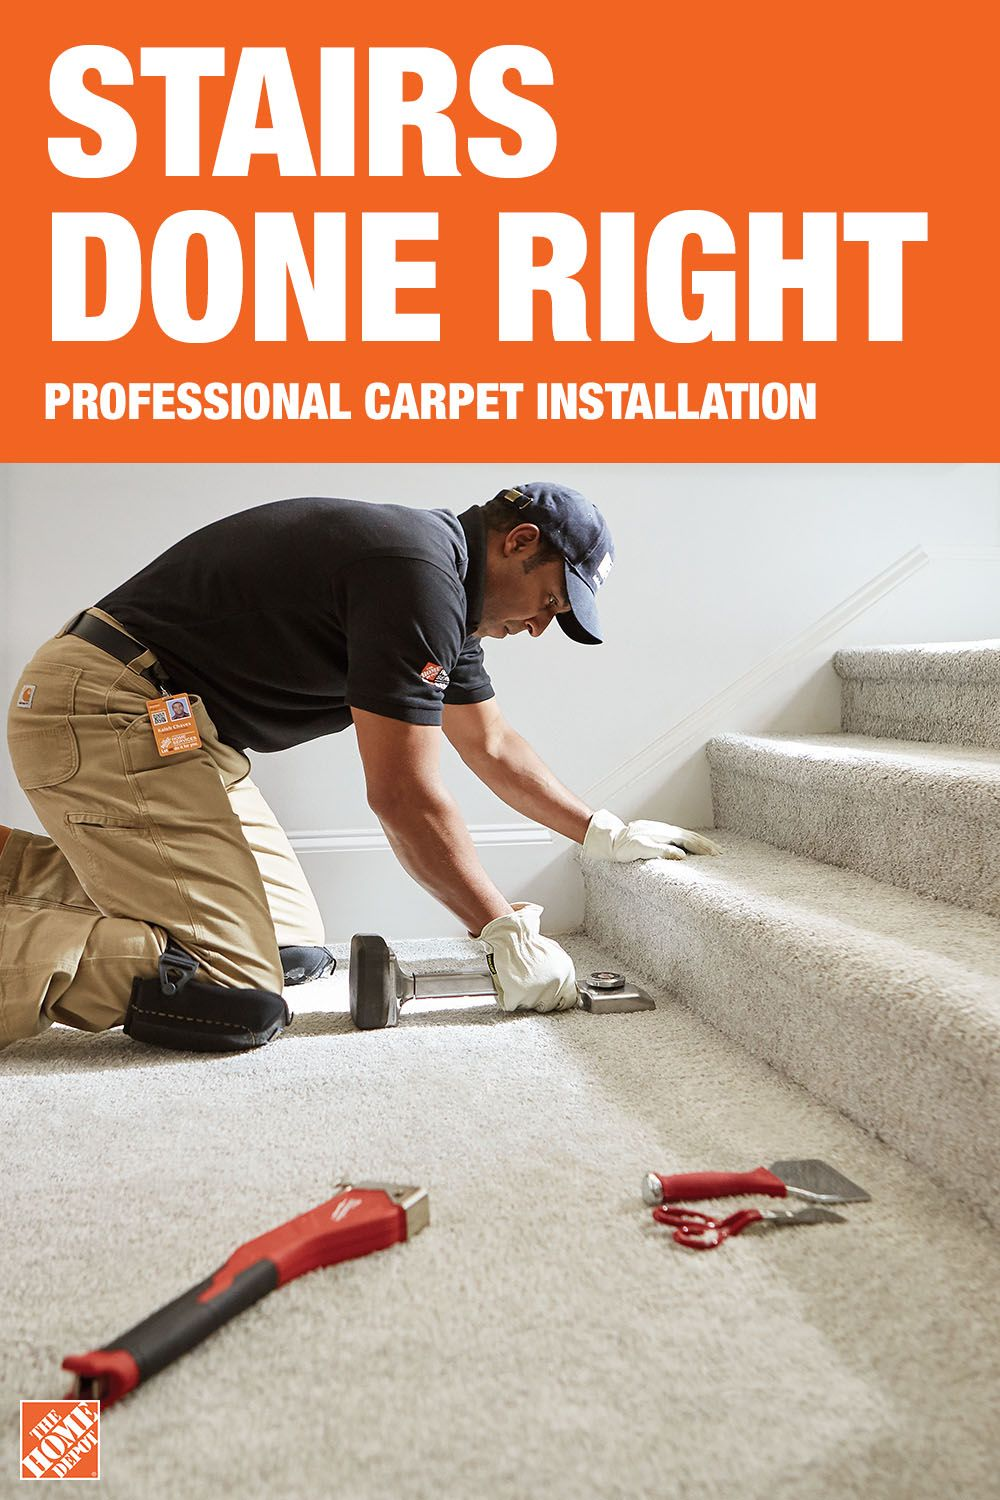 When You Get Your New Carpet Installed By The Home Depot You Ll   Best Carpet For Stairs Home Depot   Flooring   Carpet Tiles   Hallway Carpet   Textured Carpet   Shaw Floors